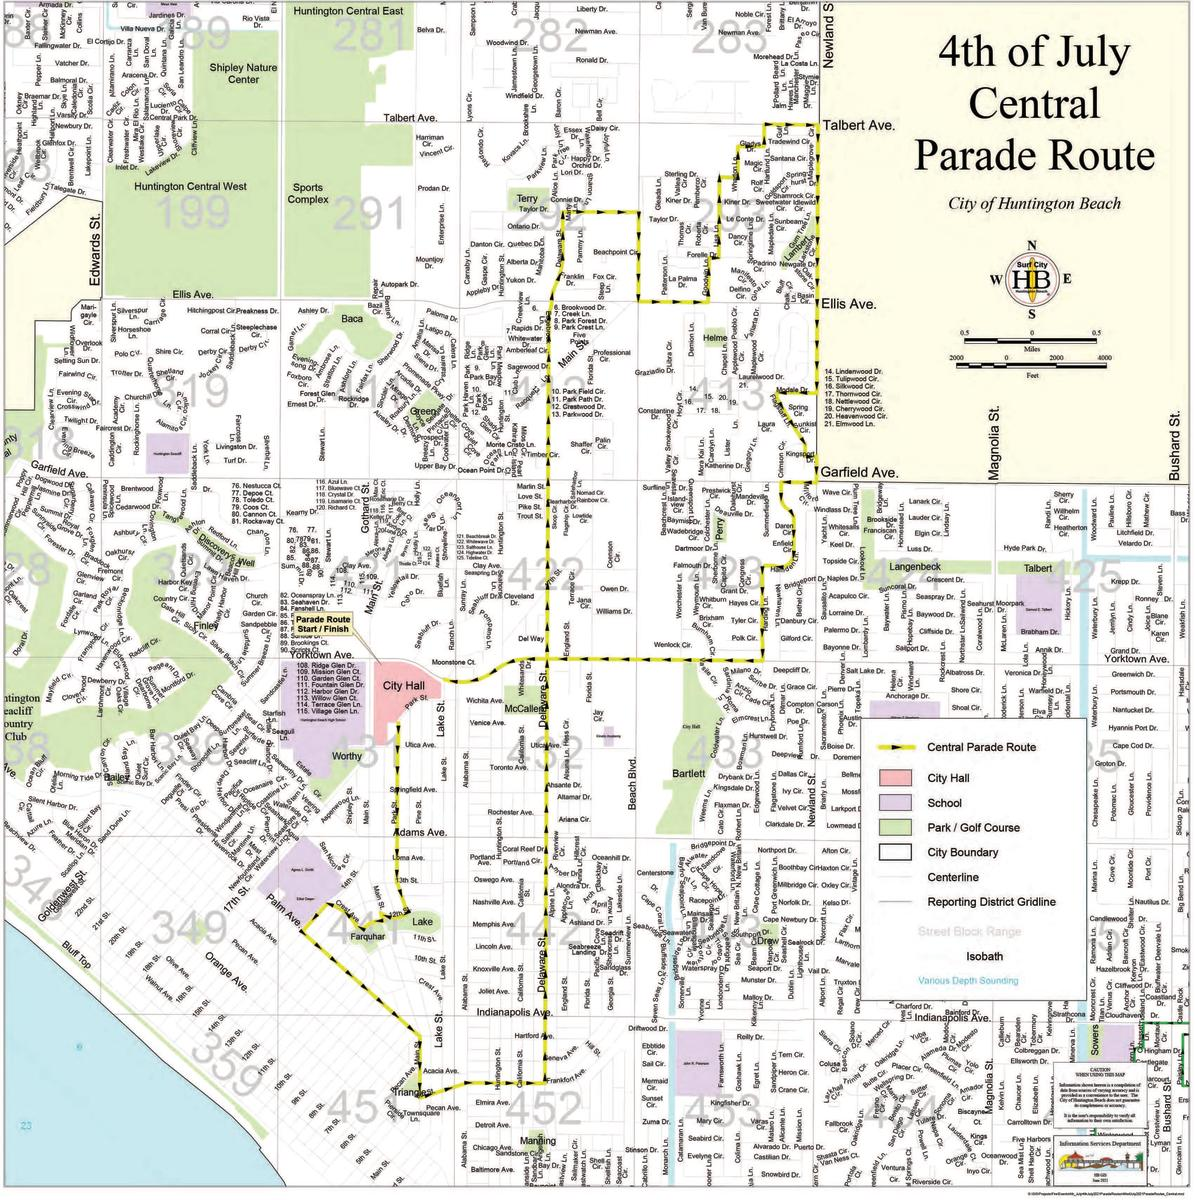 Huntington Beach 4th of July Parade Route